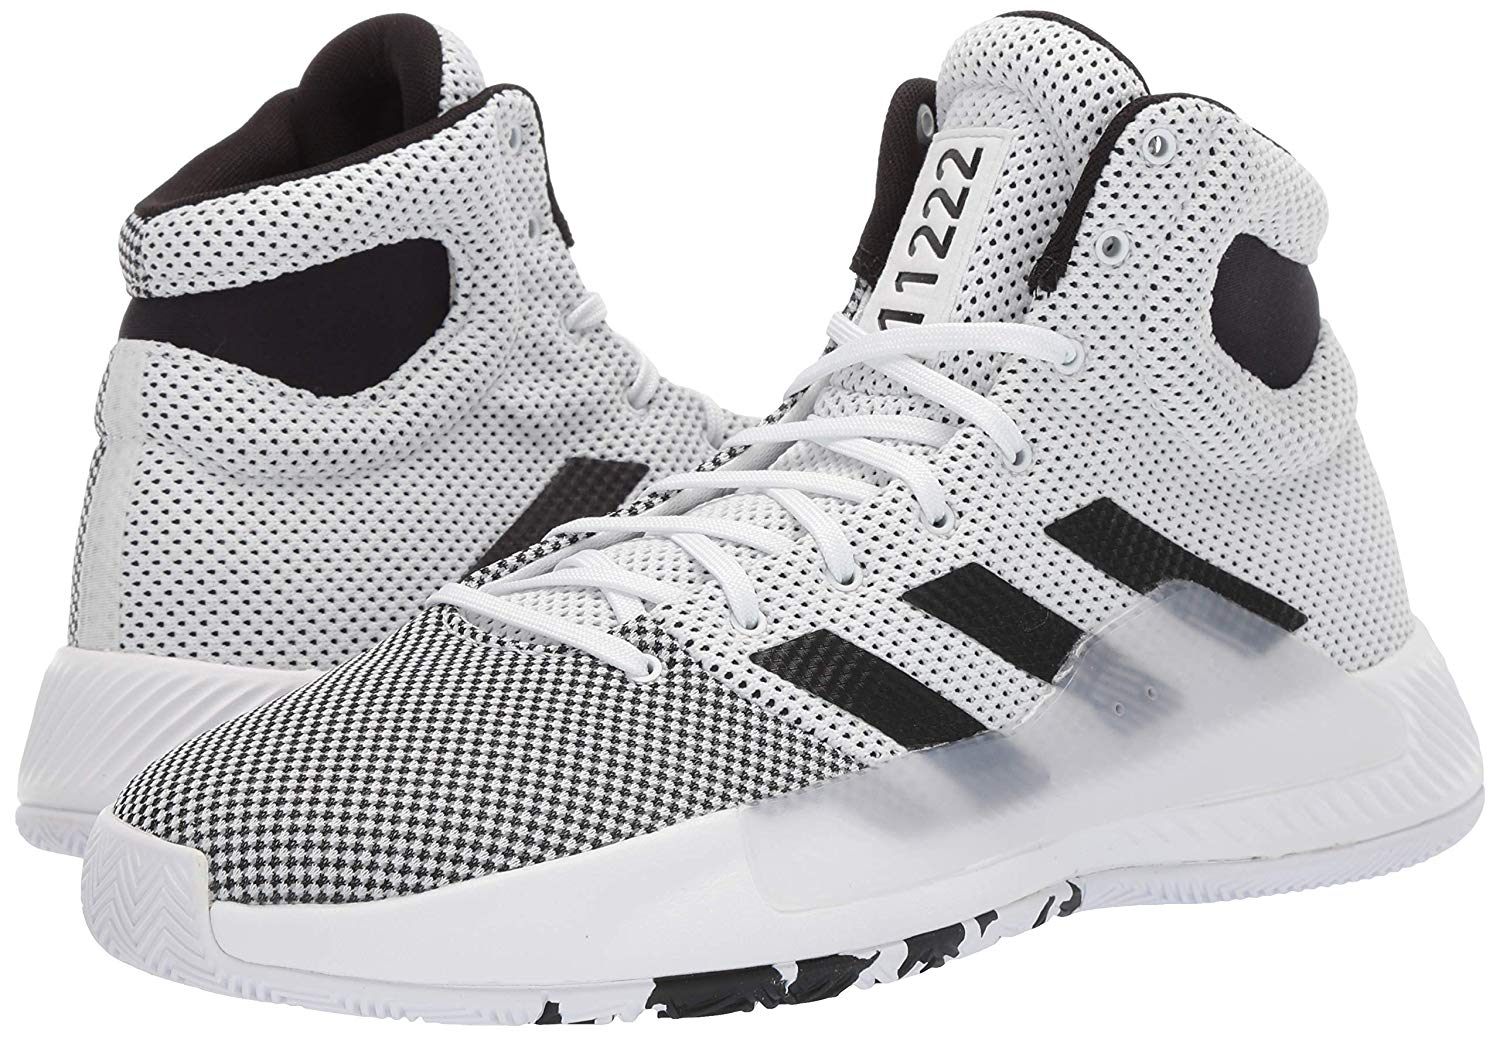 d6e38d49a4357 adidas pro bounce madness amazon-7 - WearTesters